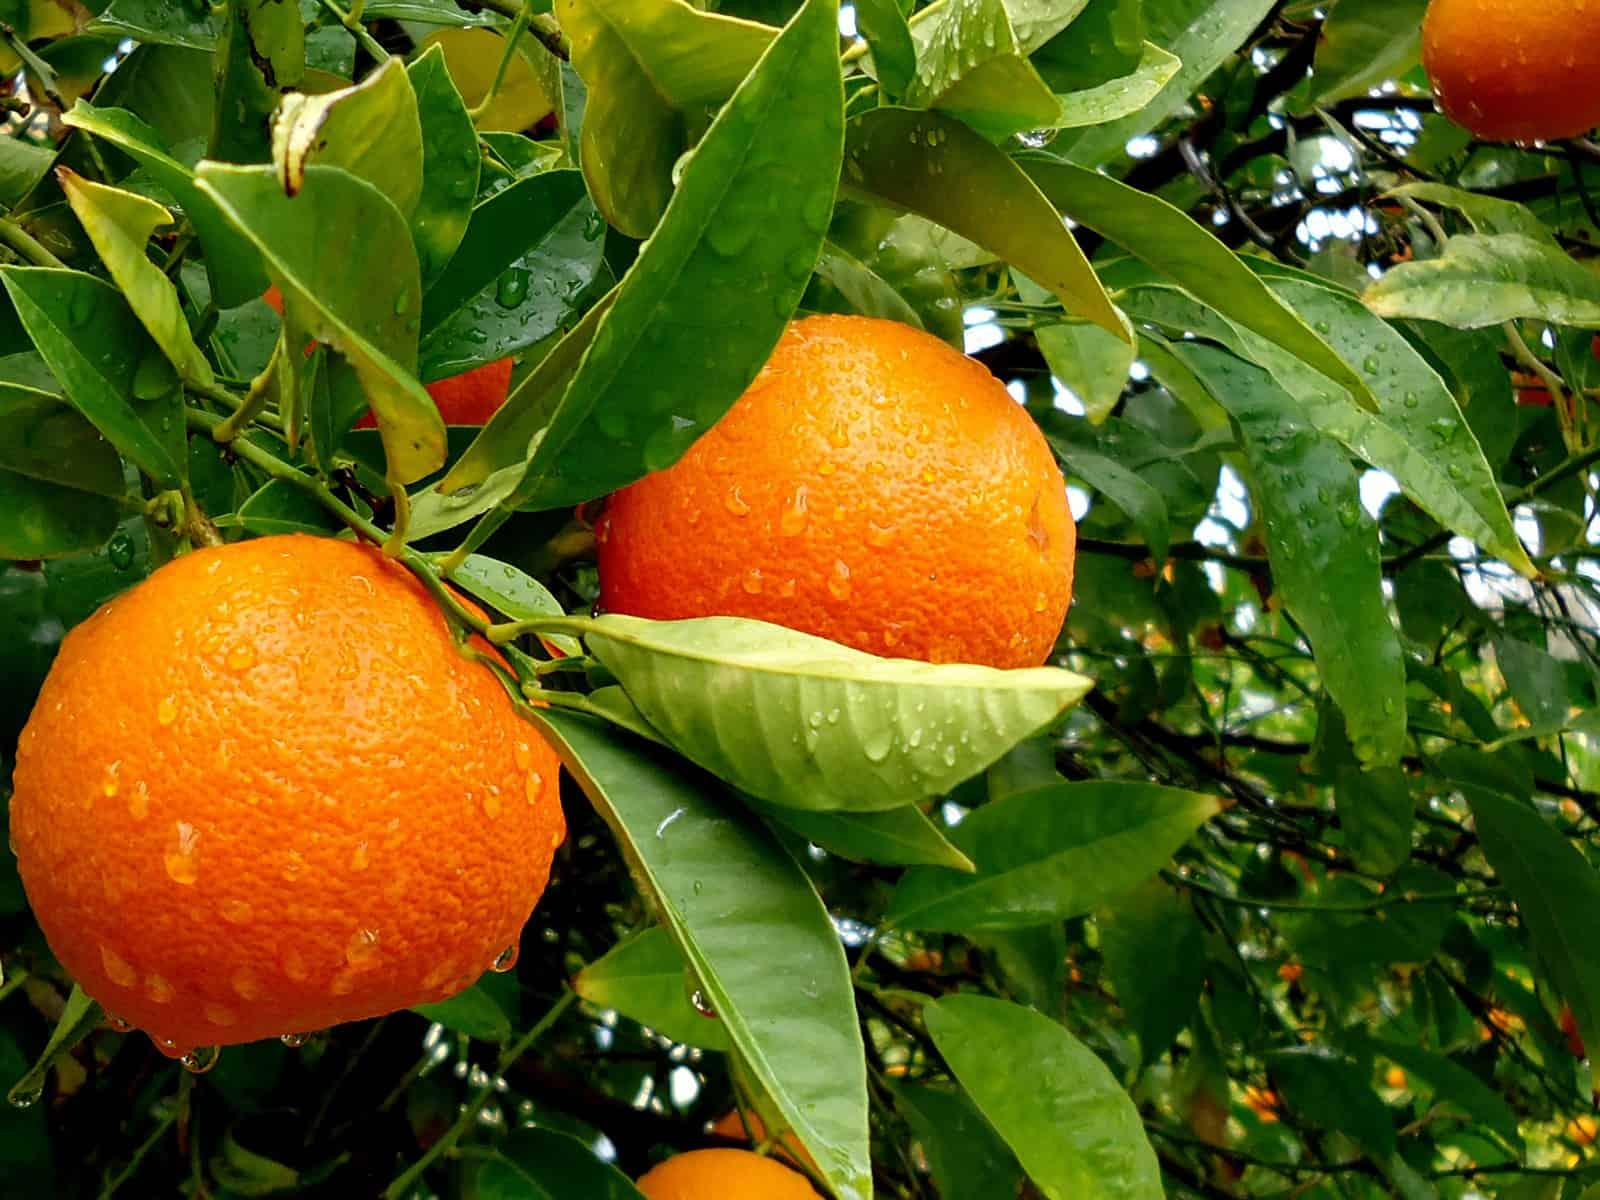 orange winter fruit lifestyle home garden citrus tree lifestyle home garden nursery plant shop johannesburg gauteng